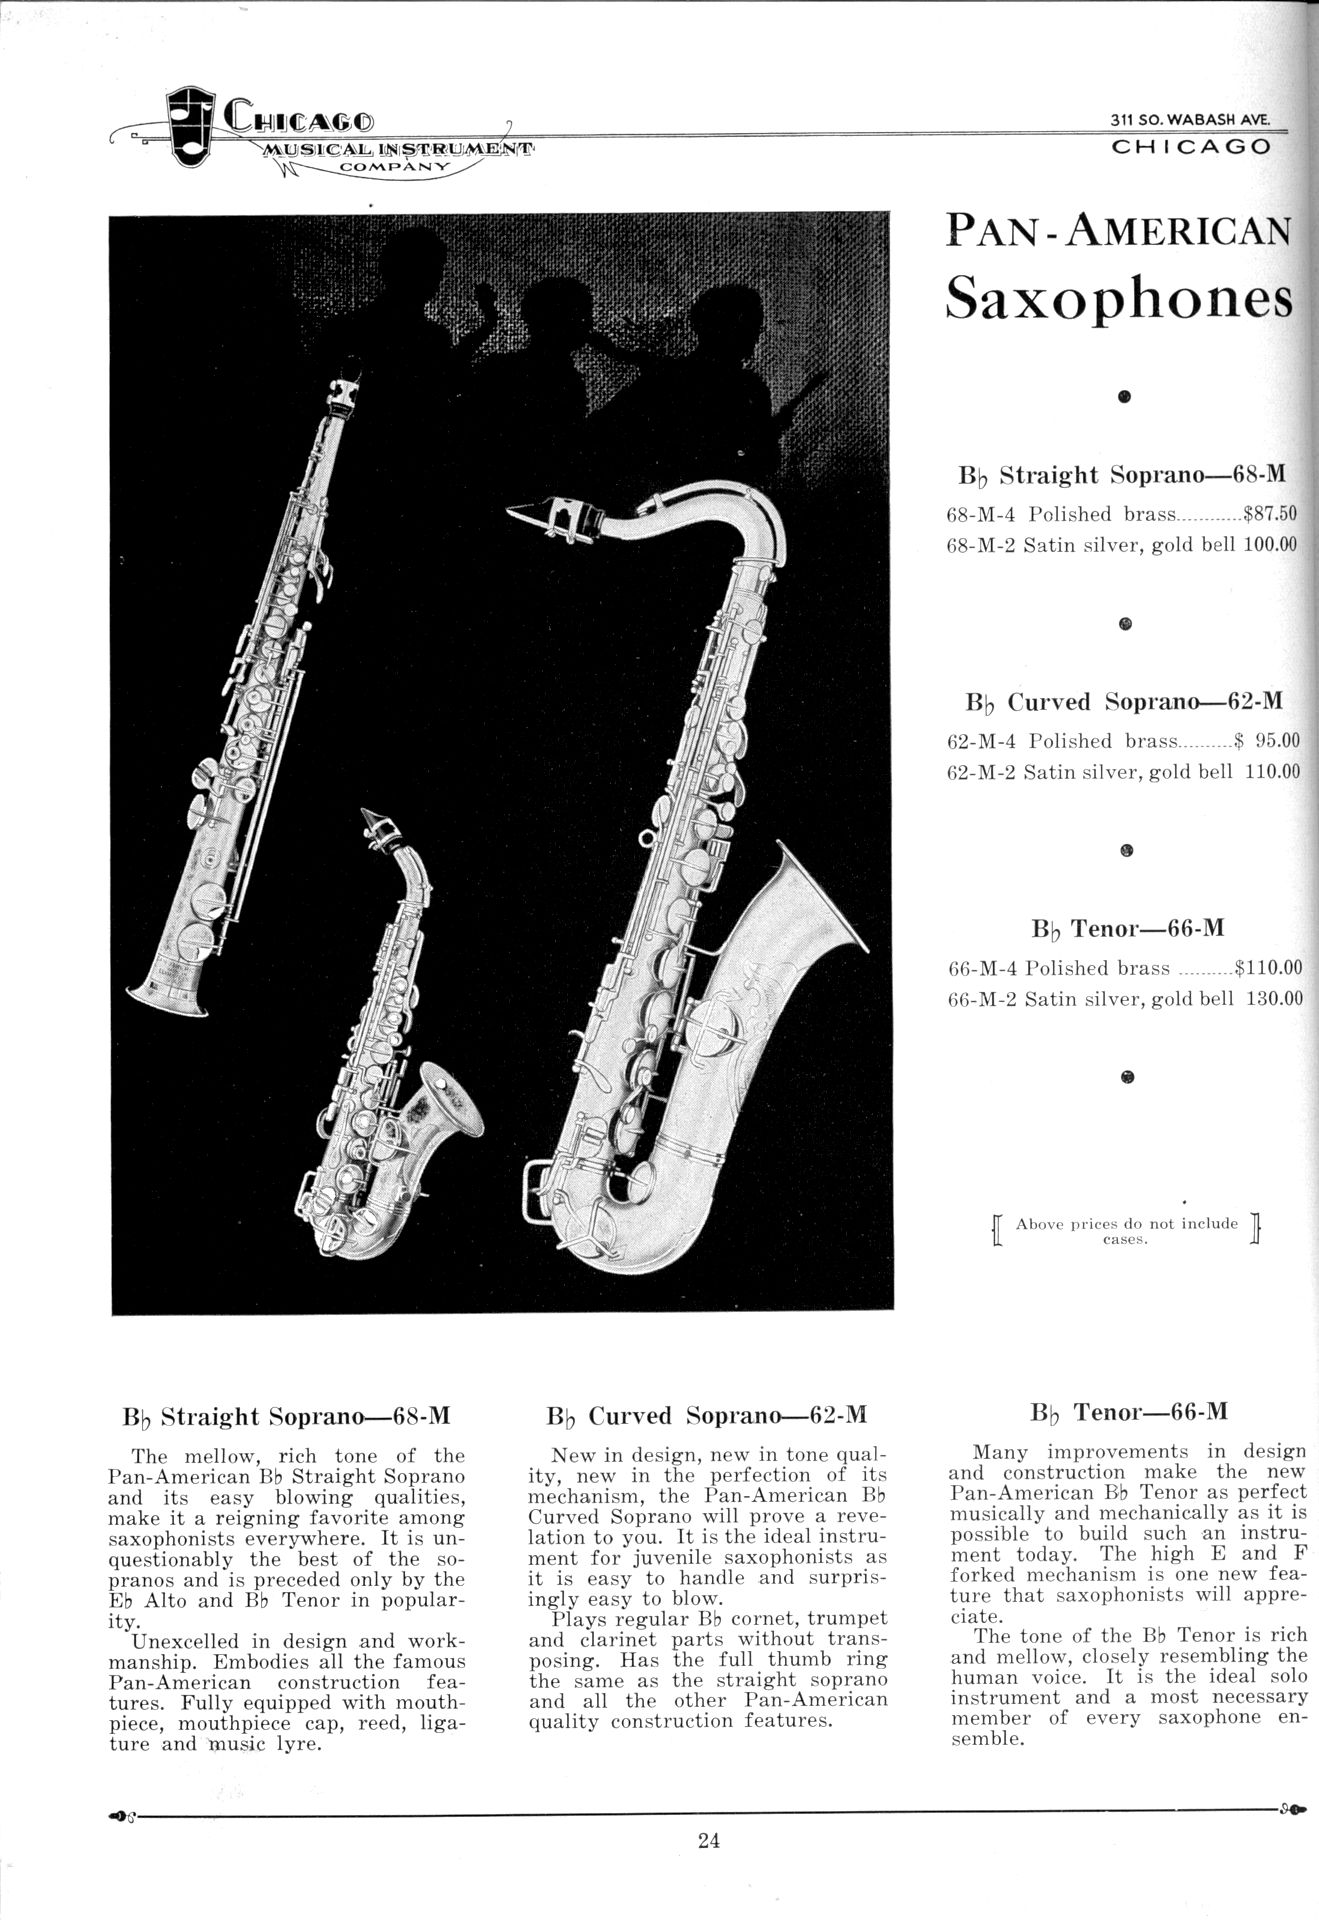 Pan American saxophones, vintage catalogue, 1931, Chicago Musical Instrument Co., soprano sax, curved soprano, straight soprano, tenor saxophone, 66M, 62M, 68M